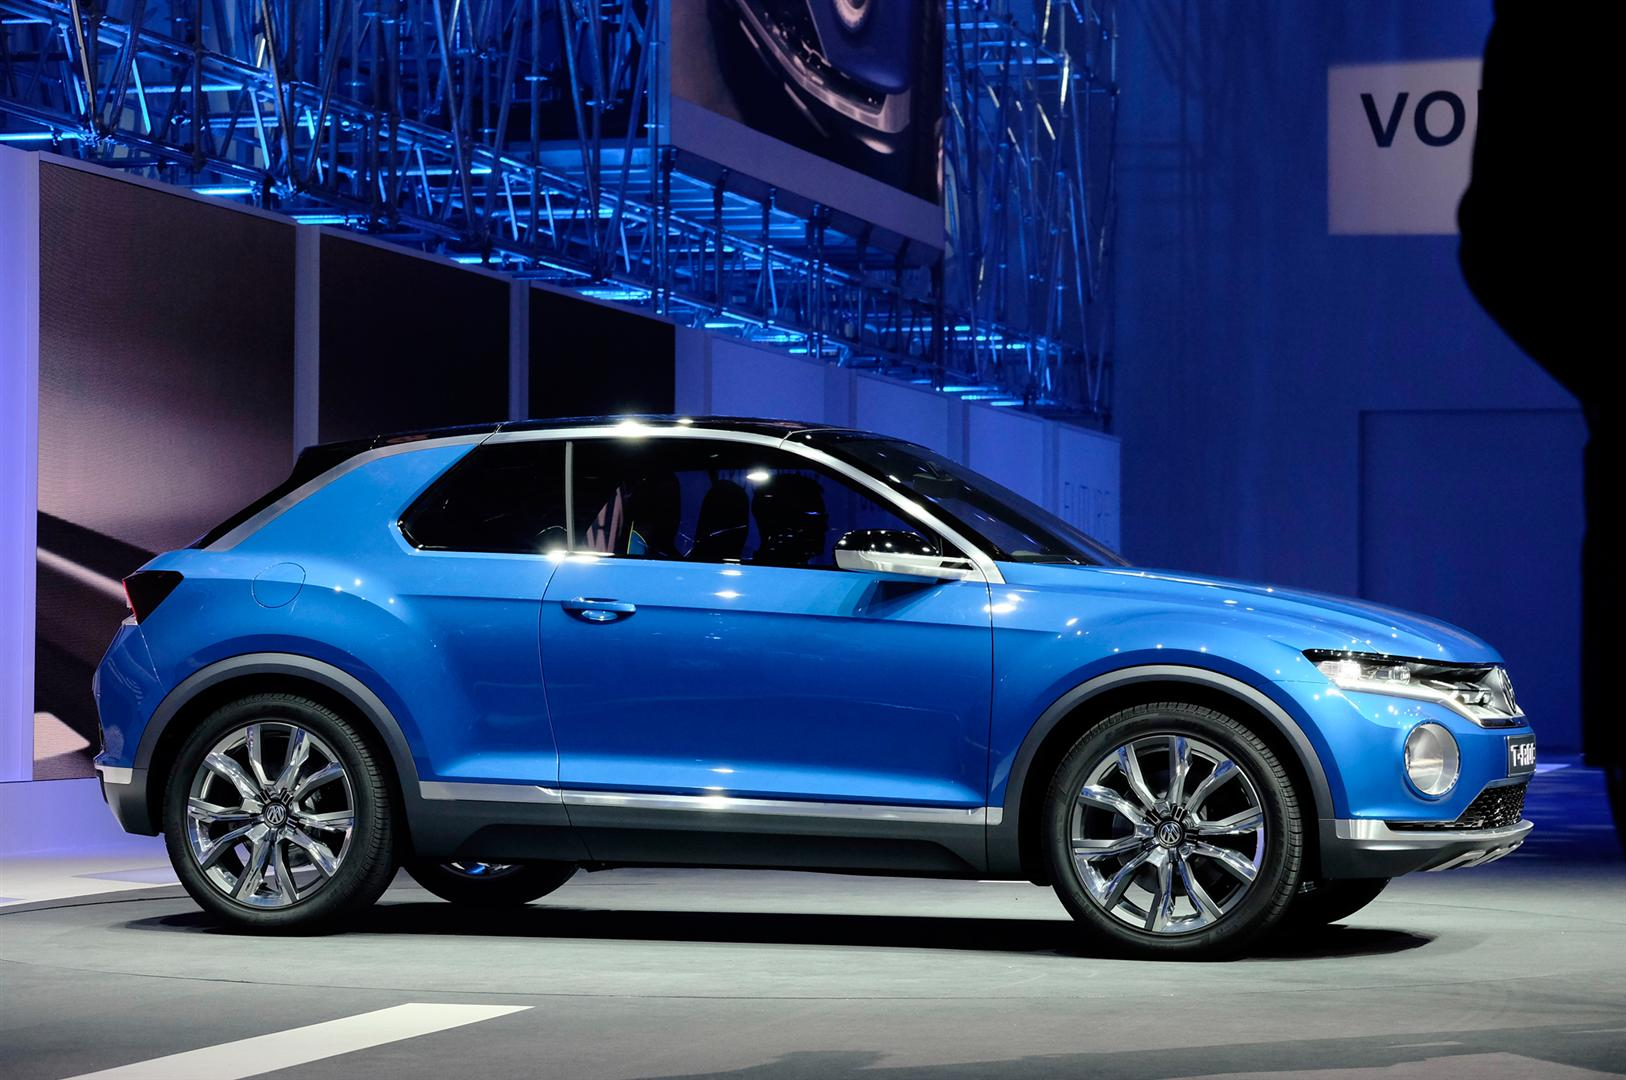 2018 Volkswagen T-Roc Price and Lease Deal